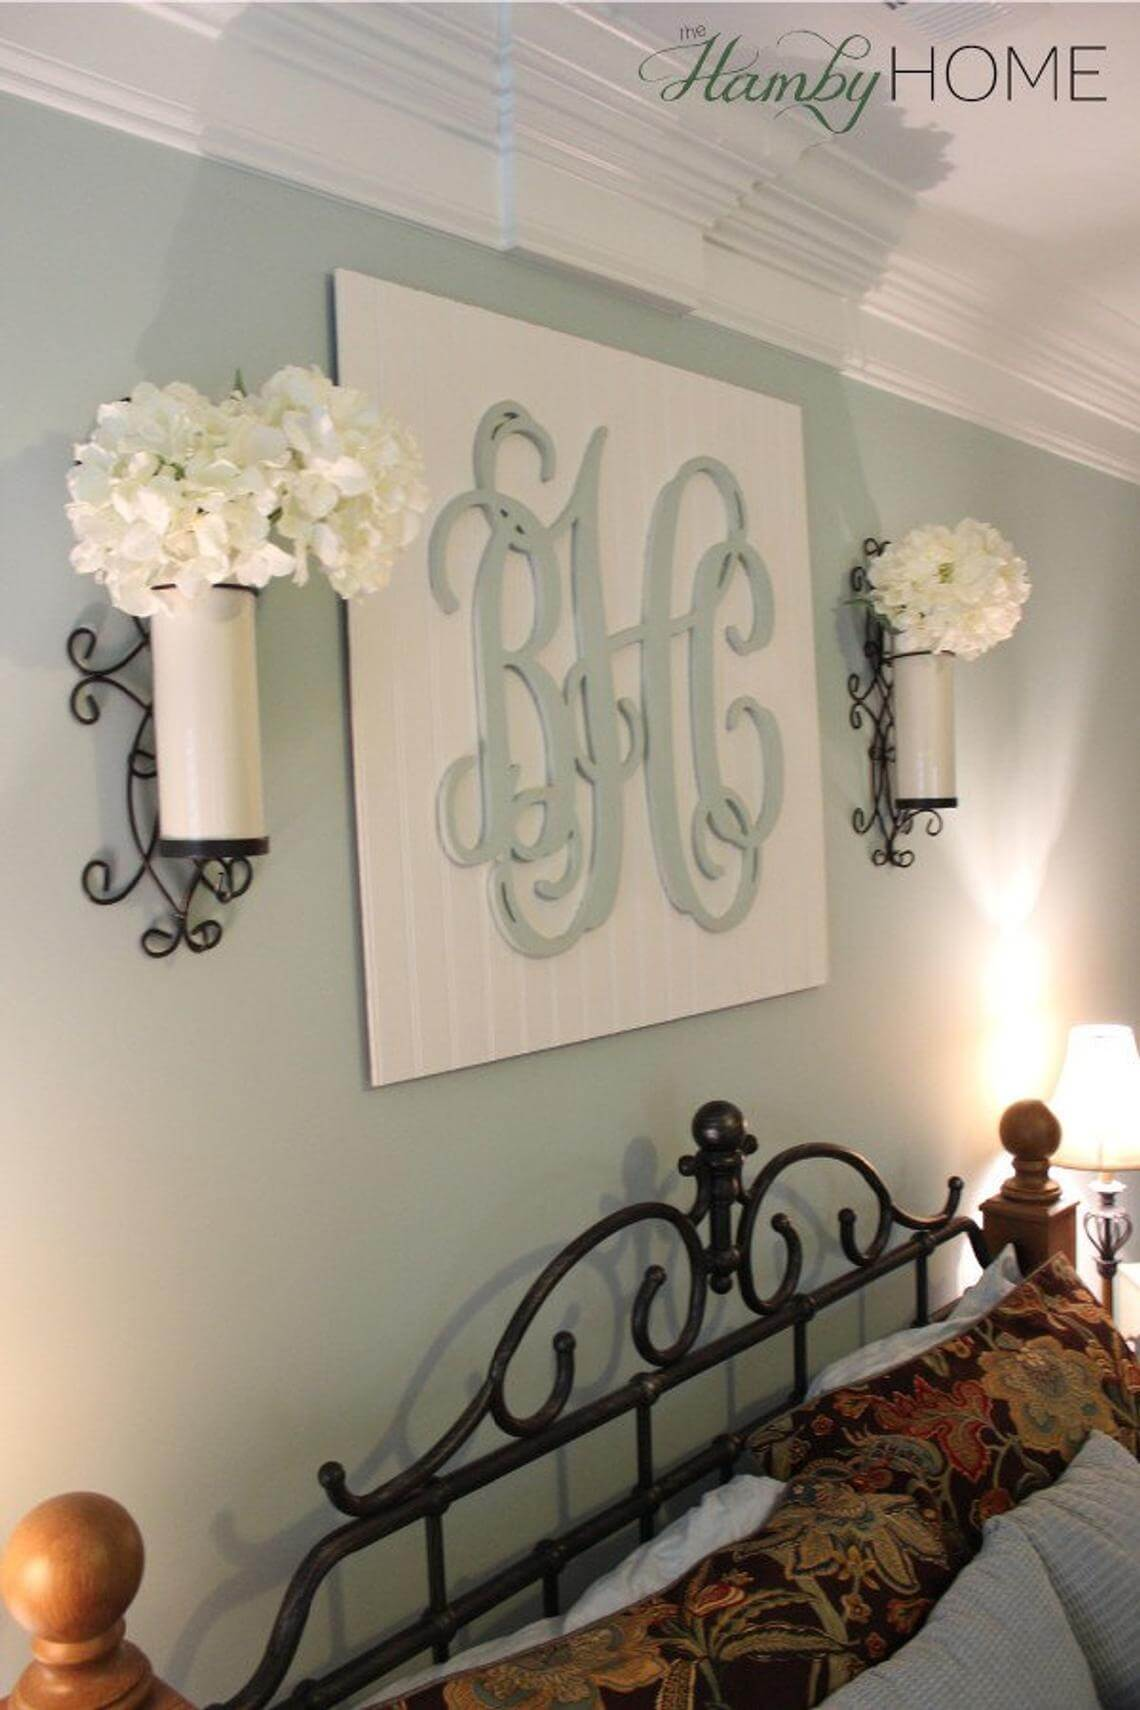 Simply Elegant Scrolls and Monogrammed Master Bedroom